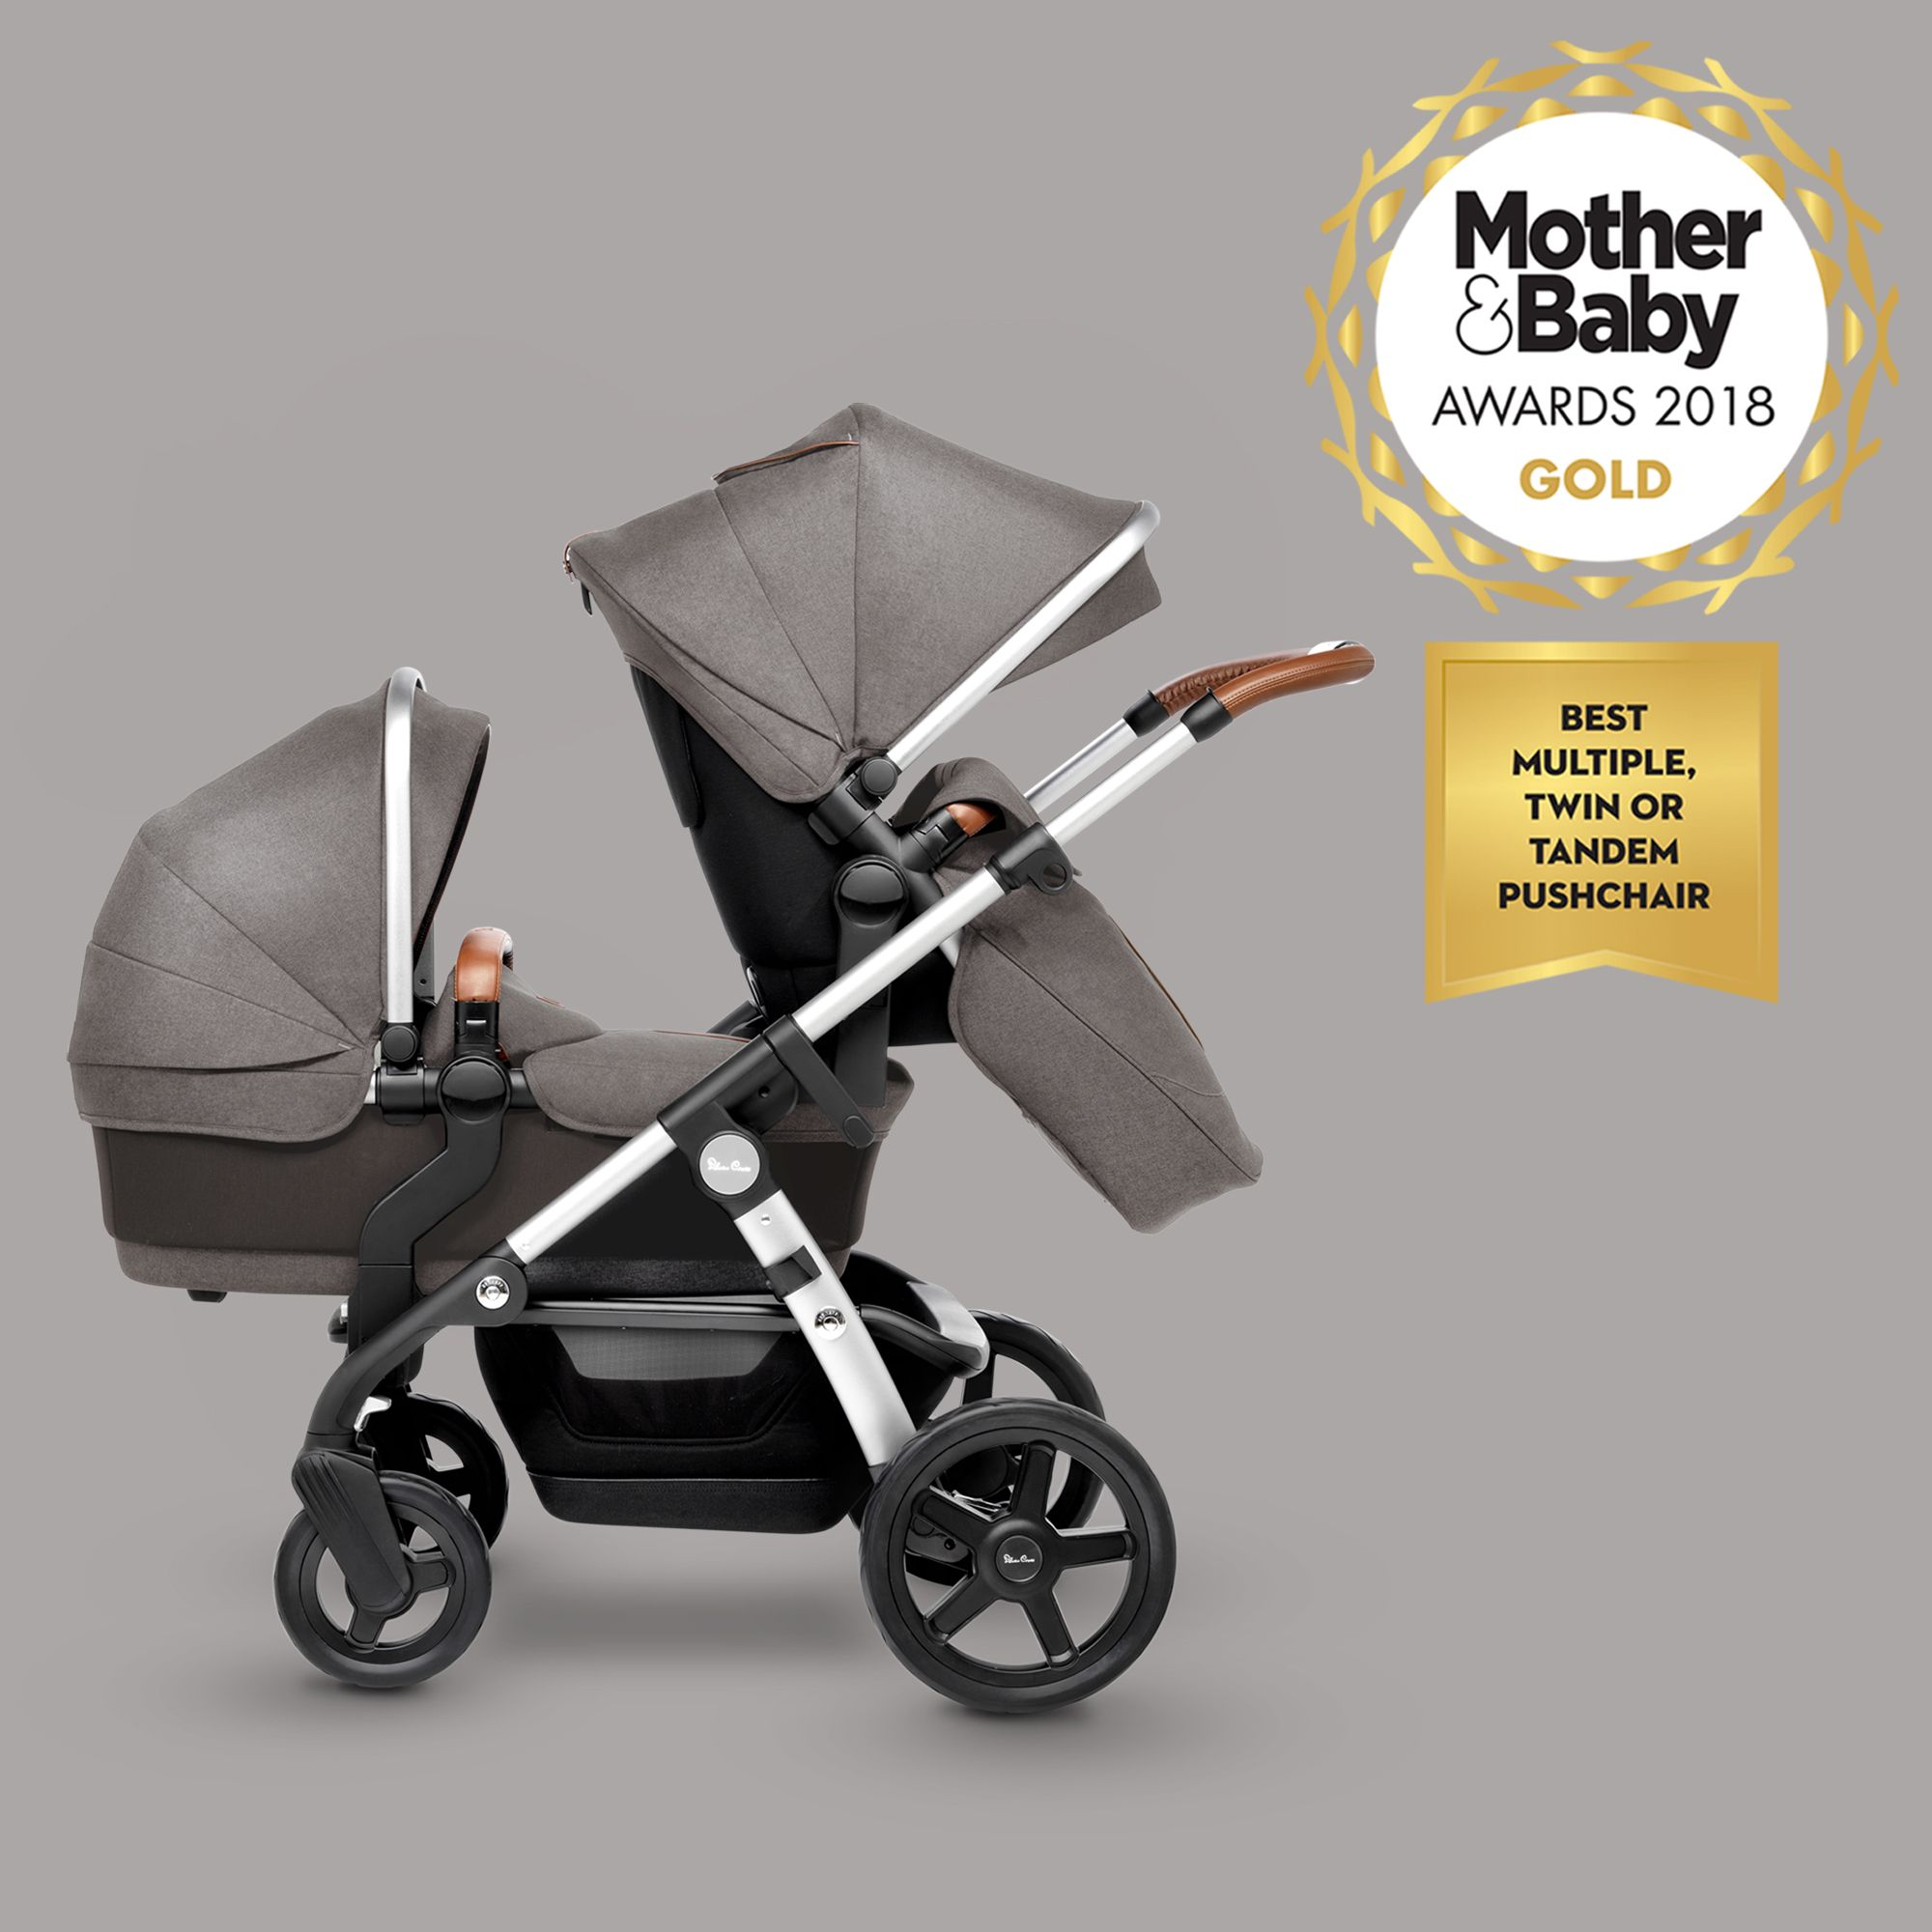 Silver Cross Elegance Buggy Board Wave Sable Best Prams Tandem Prams Pushchair Travel System